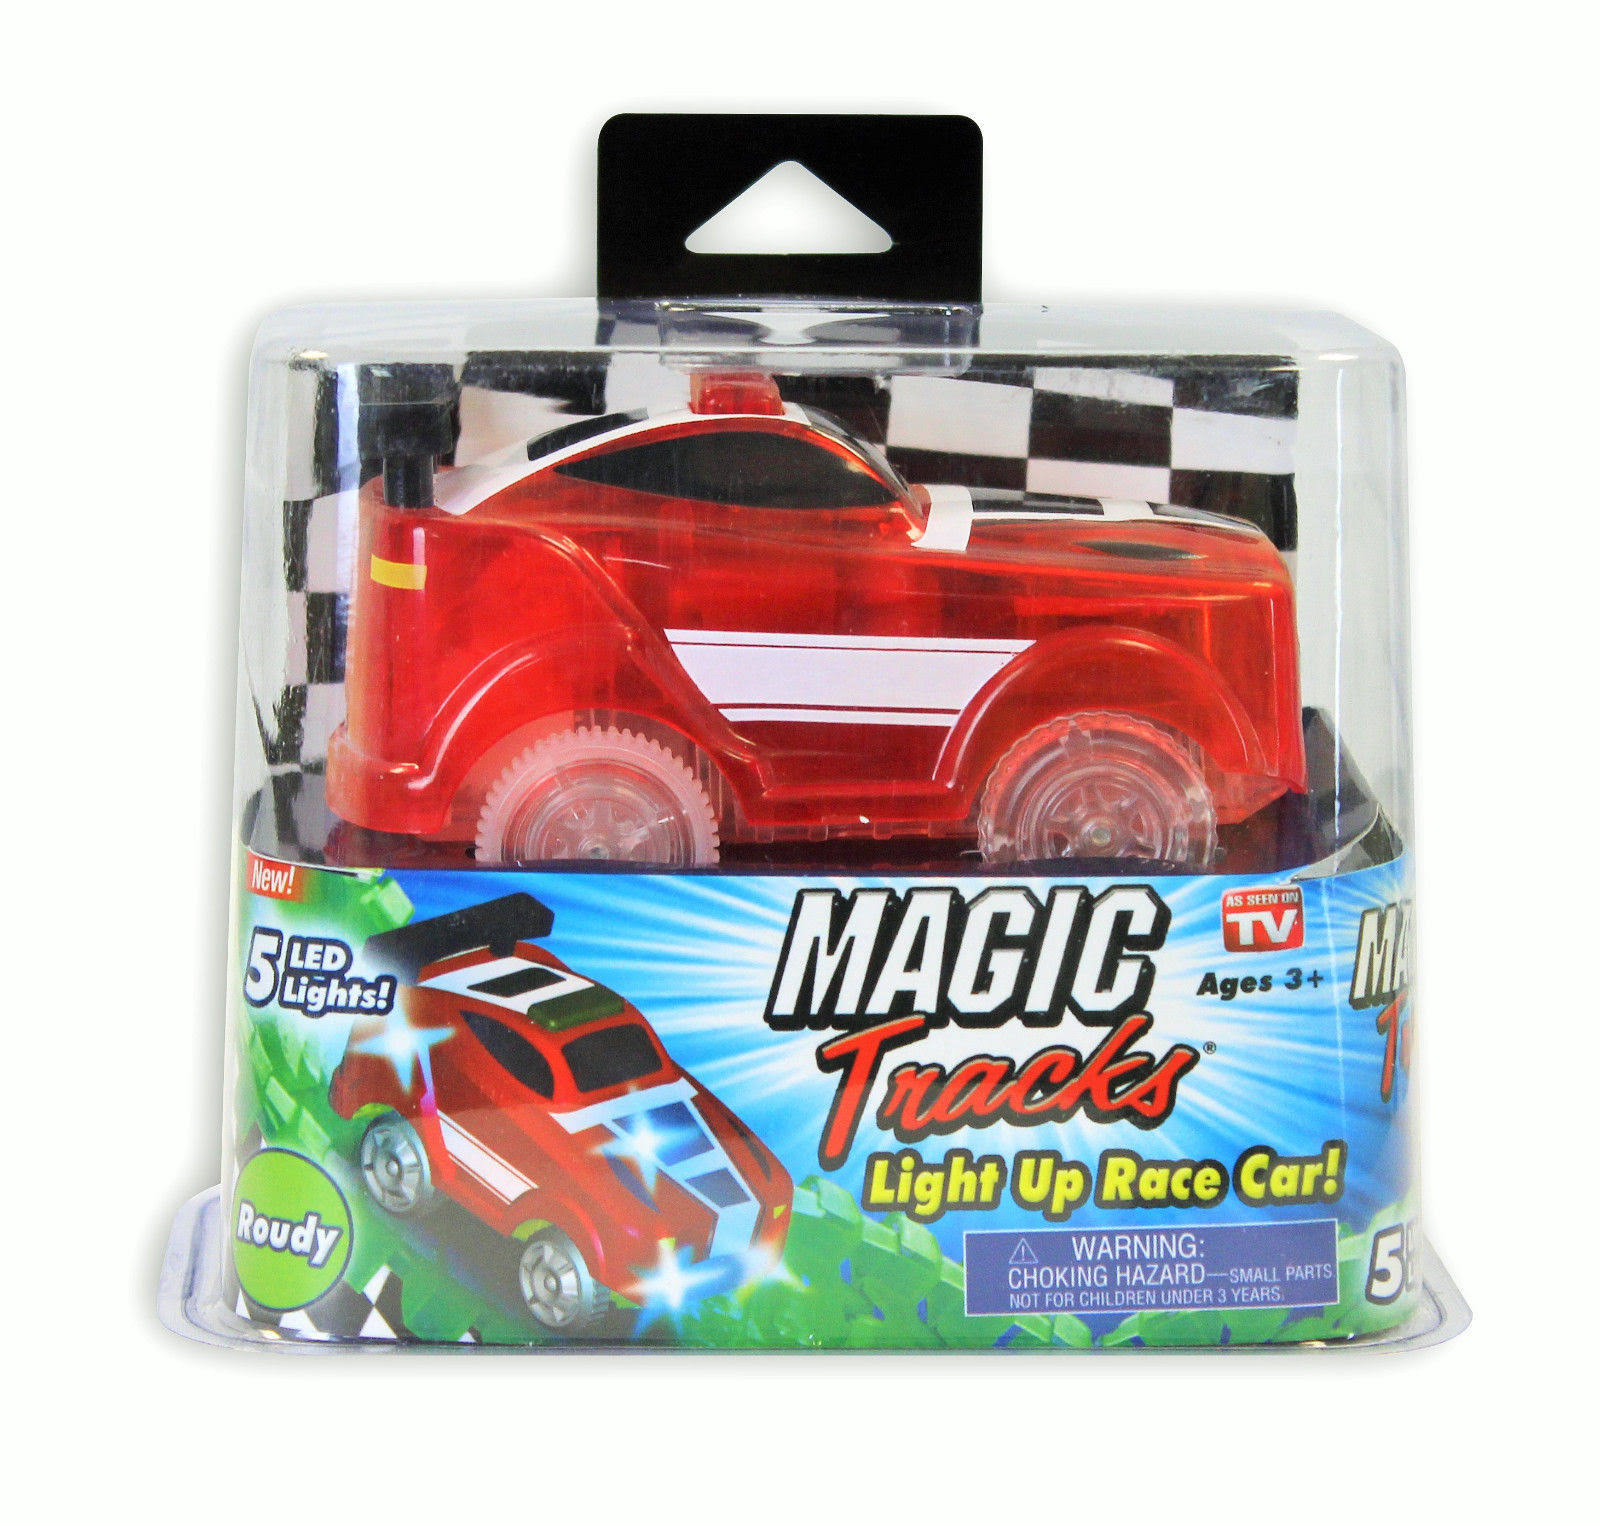 As Seen On TV Magic Tracks Light Up Race Car